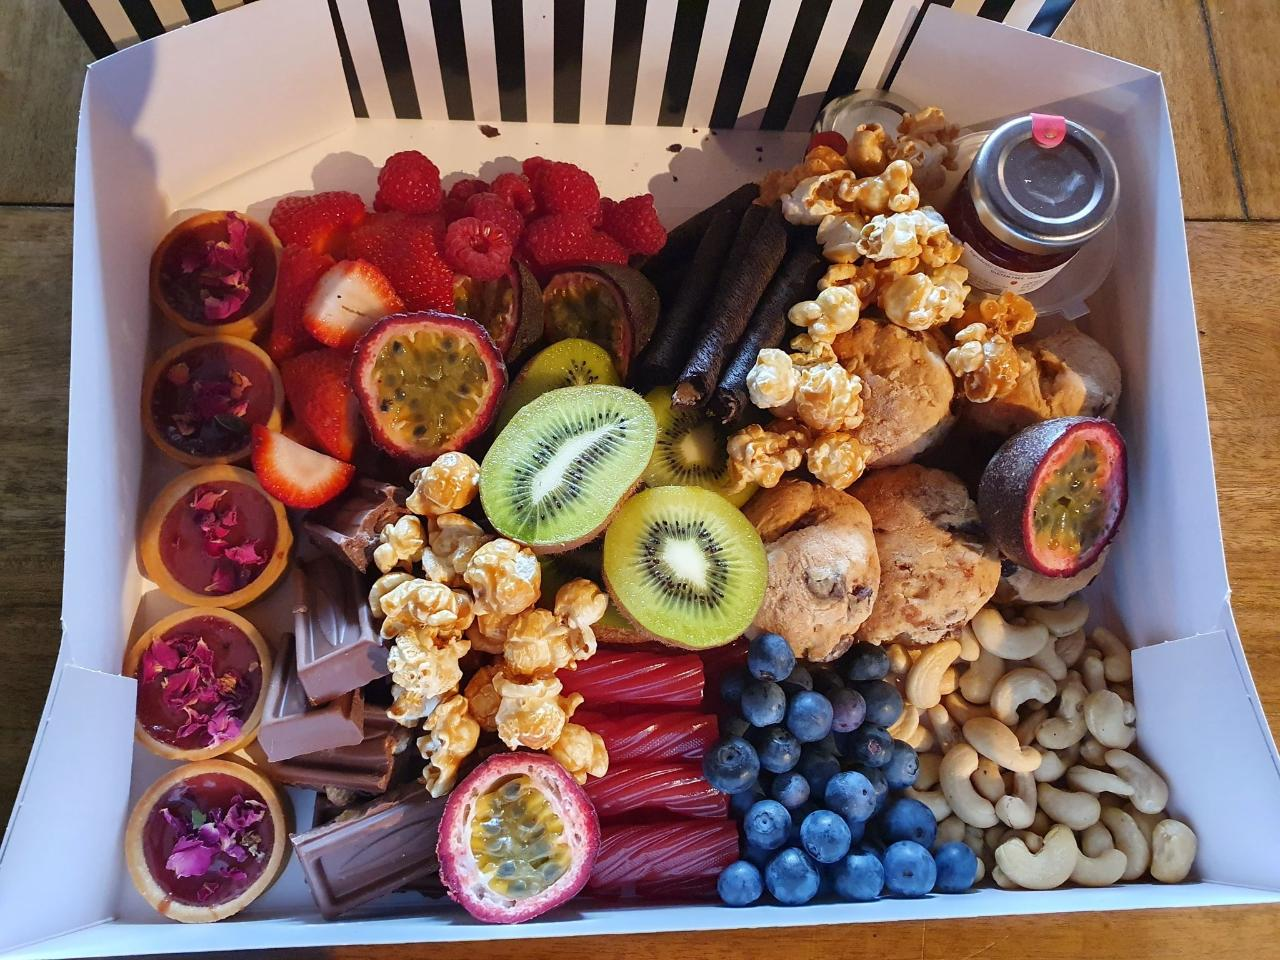 Grazing Box (Sweet, Savoury or Both), Delivered to Your Door